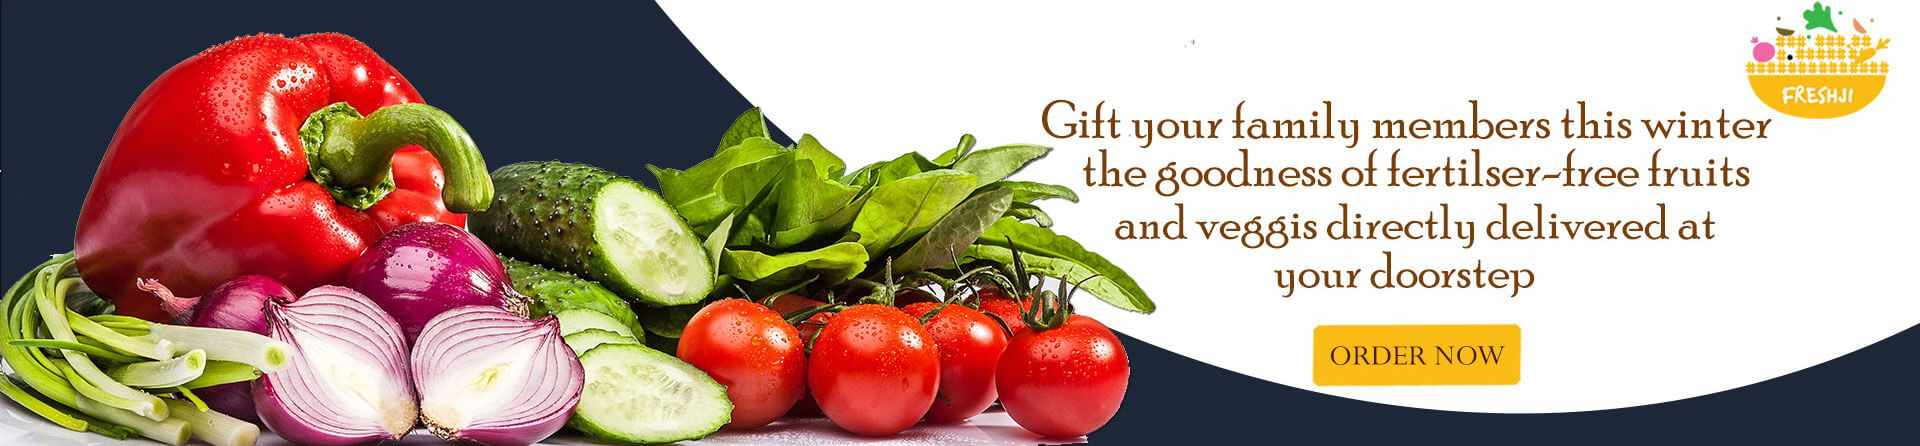 Vegetables Online Buy in Kolkata